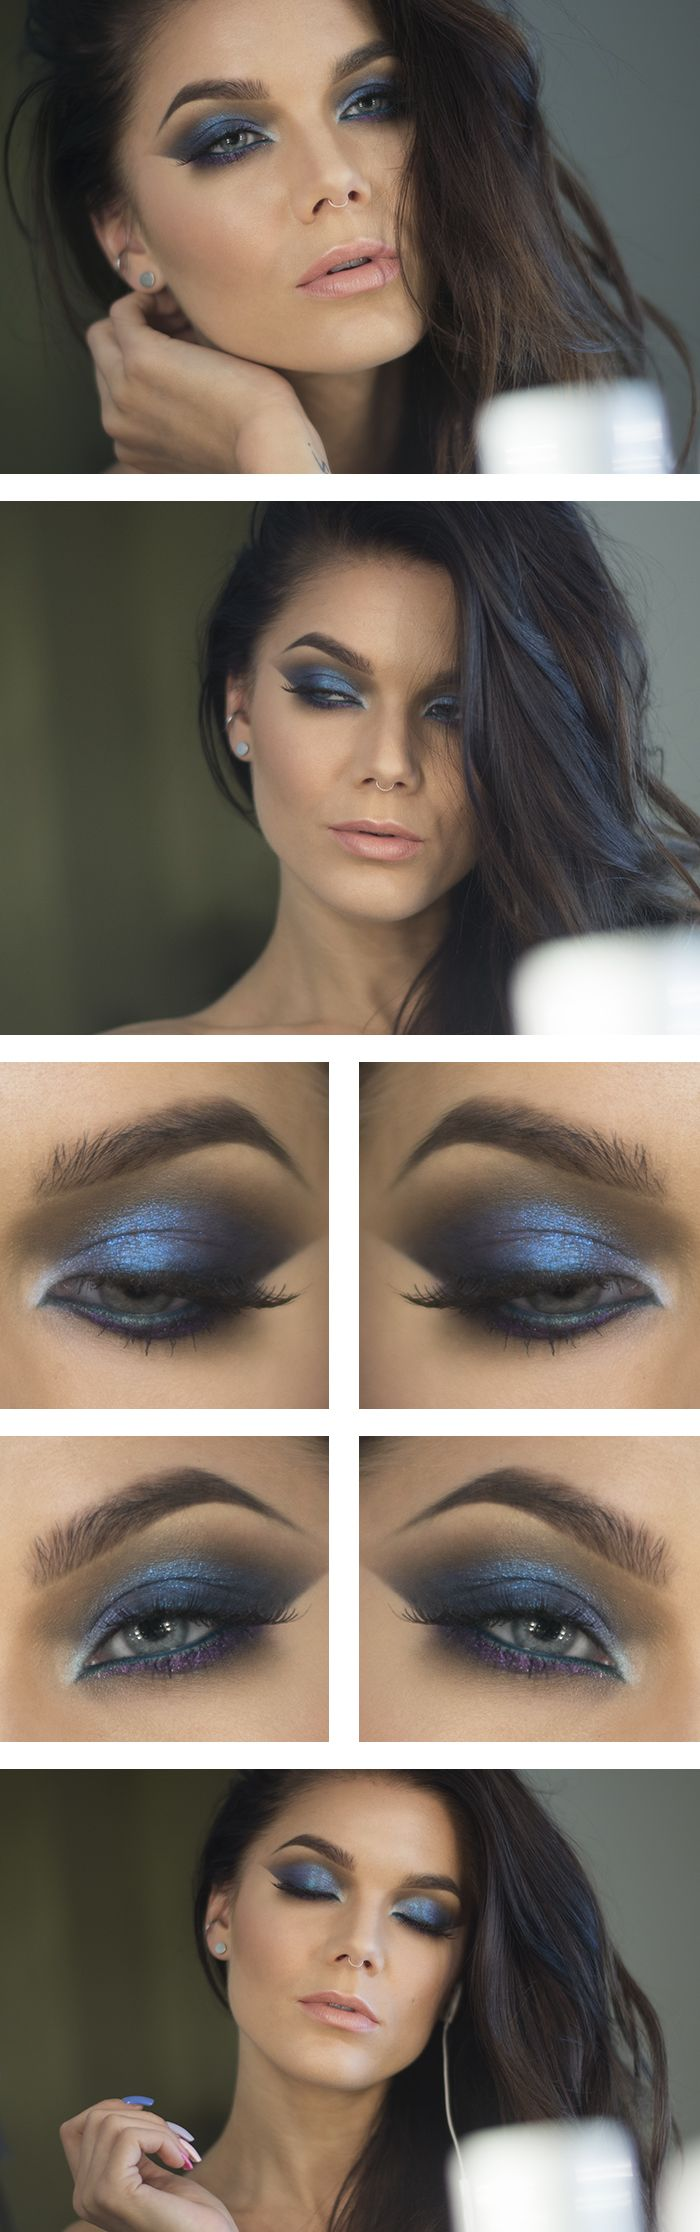 Love this look! Here's the tutorial for it https://www.youtube.com/watch?v=SBuLLQaxv8g